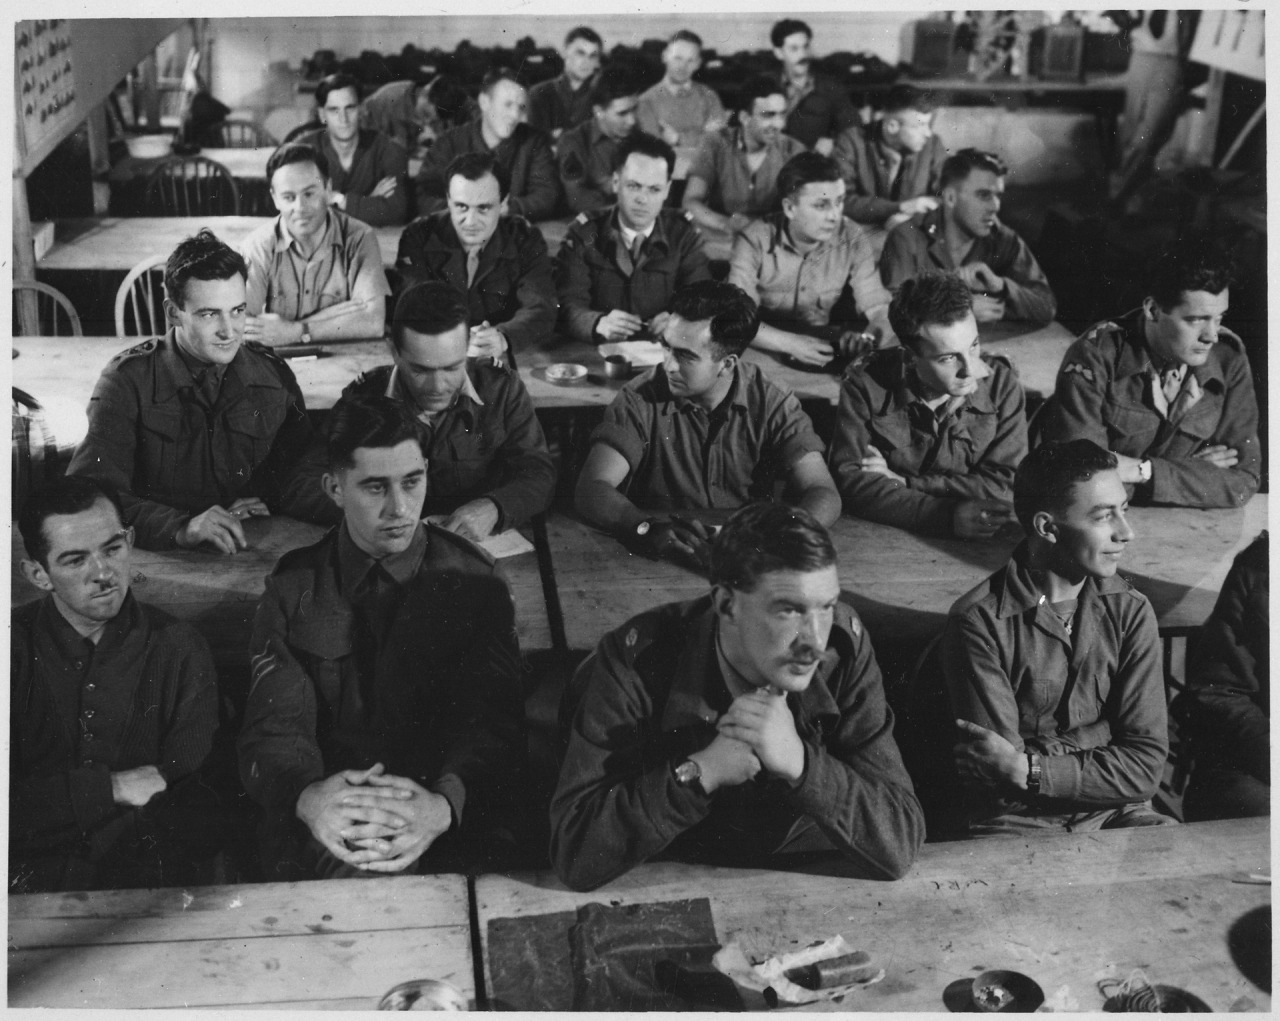 Audience_in_demolition_class._Milton_Hall,_England,_circa_1944.,_1943_-_1944_-_NARA_-_540063.tif